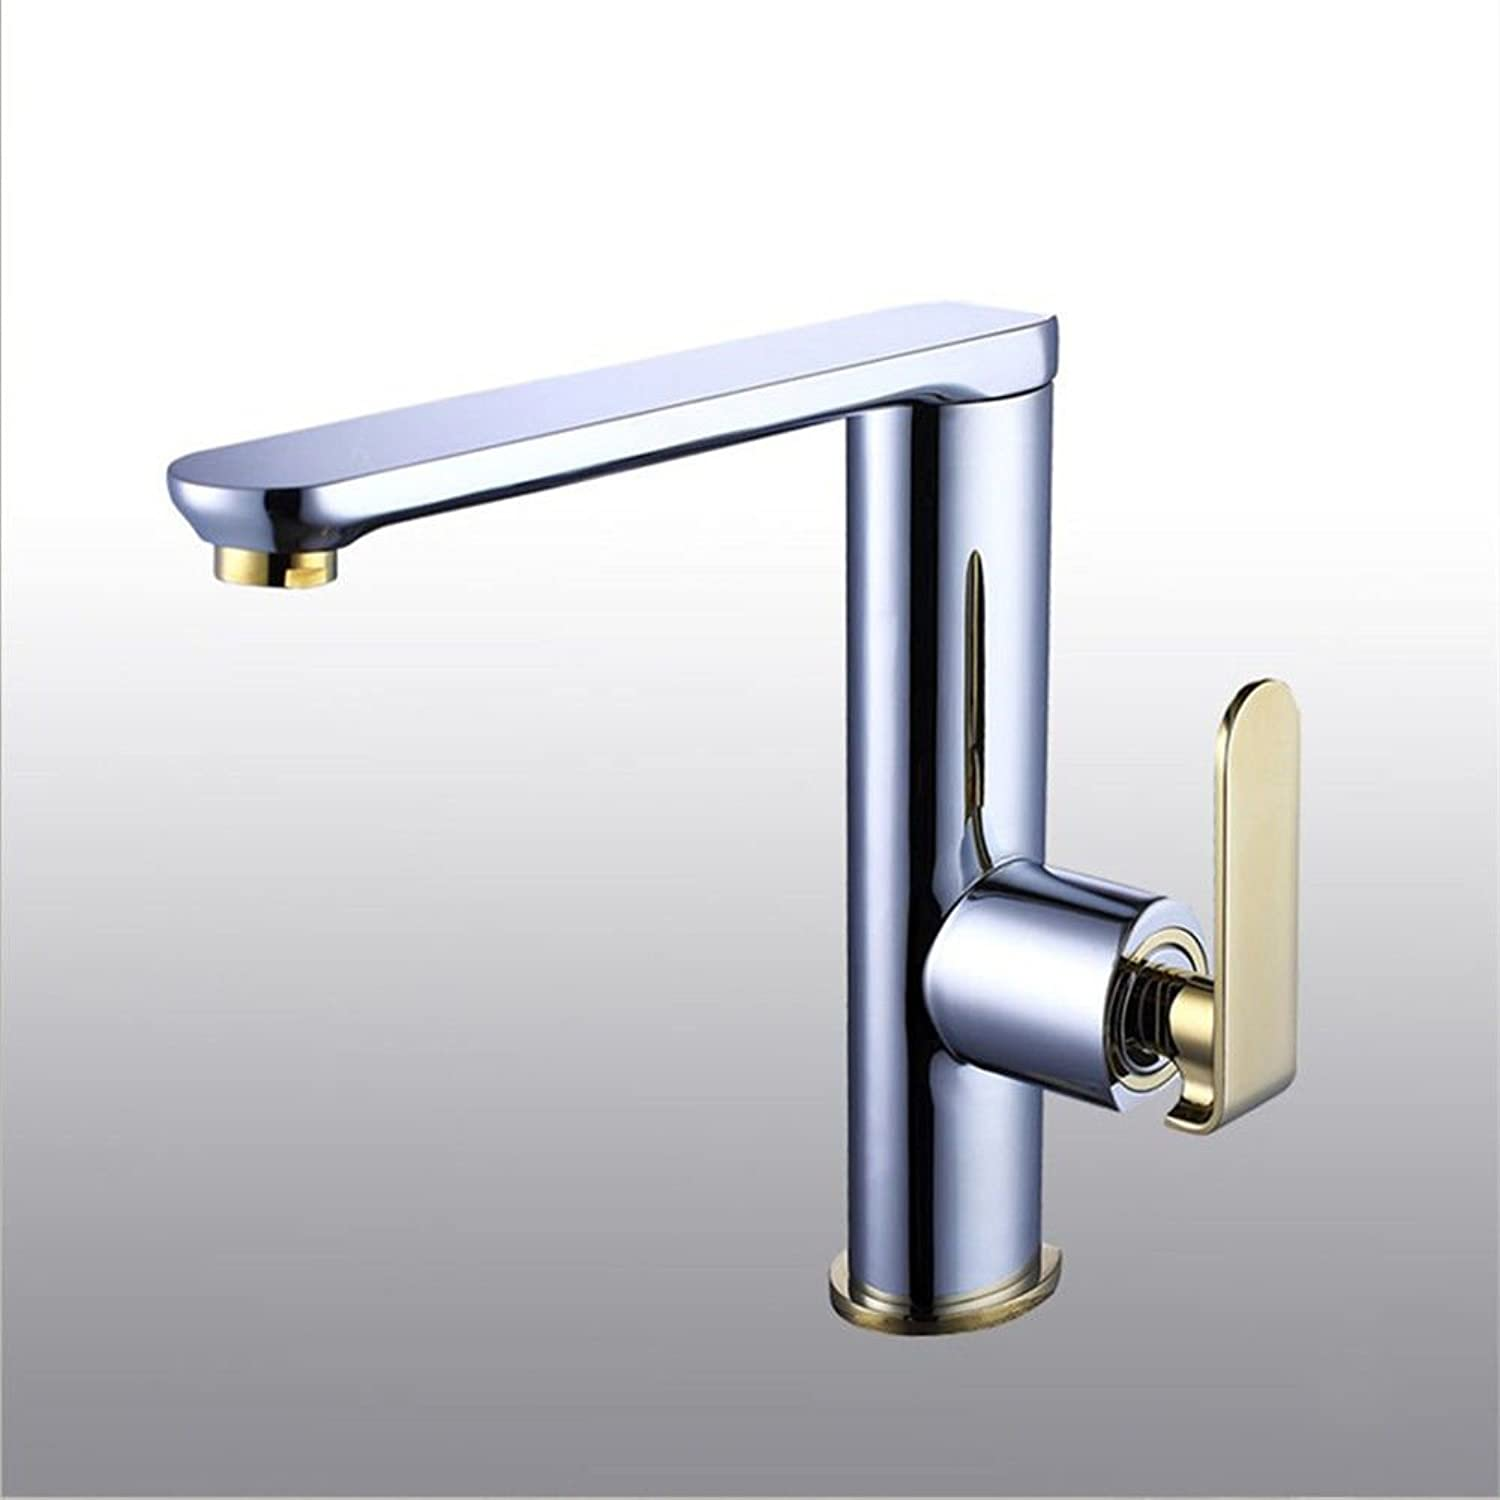 SADASD Contemporary Bathroom Full Copper Basin Faucet Mixer redating Kitchen Black Brushed Basin Sink Mixer Tap Ceramic Valve Single Hole Single Handle Cold Water With G1 2 Hose